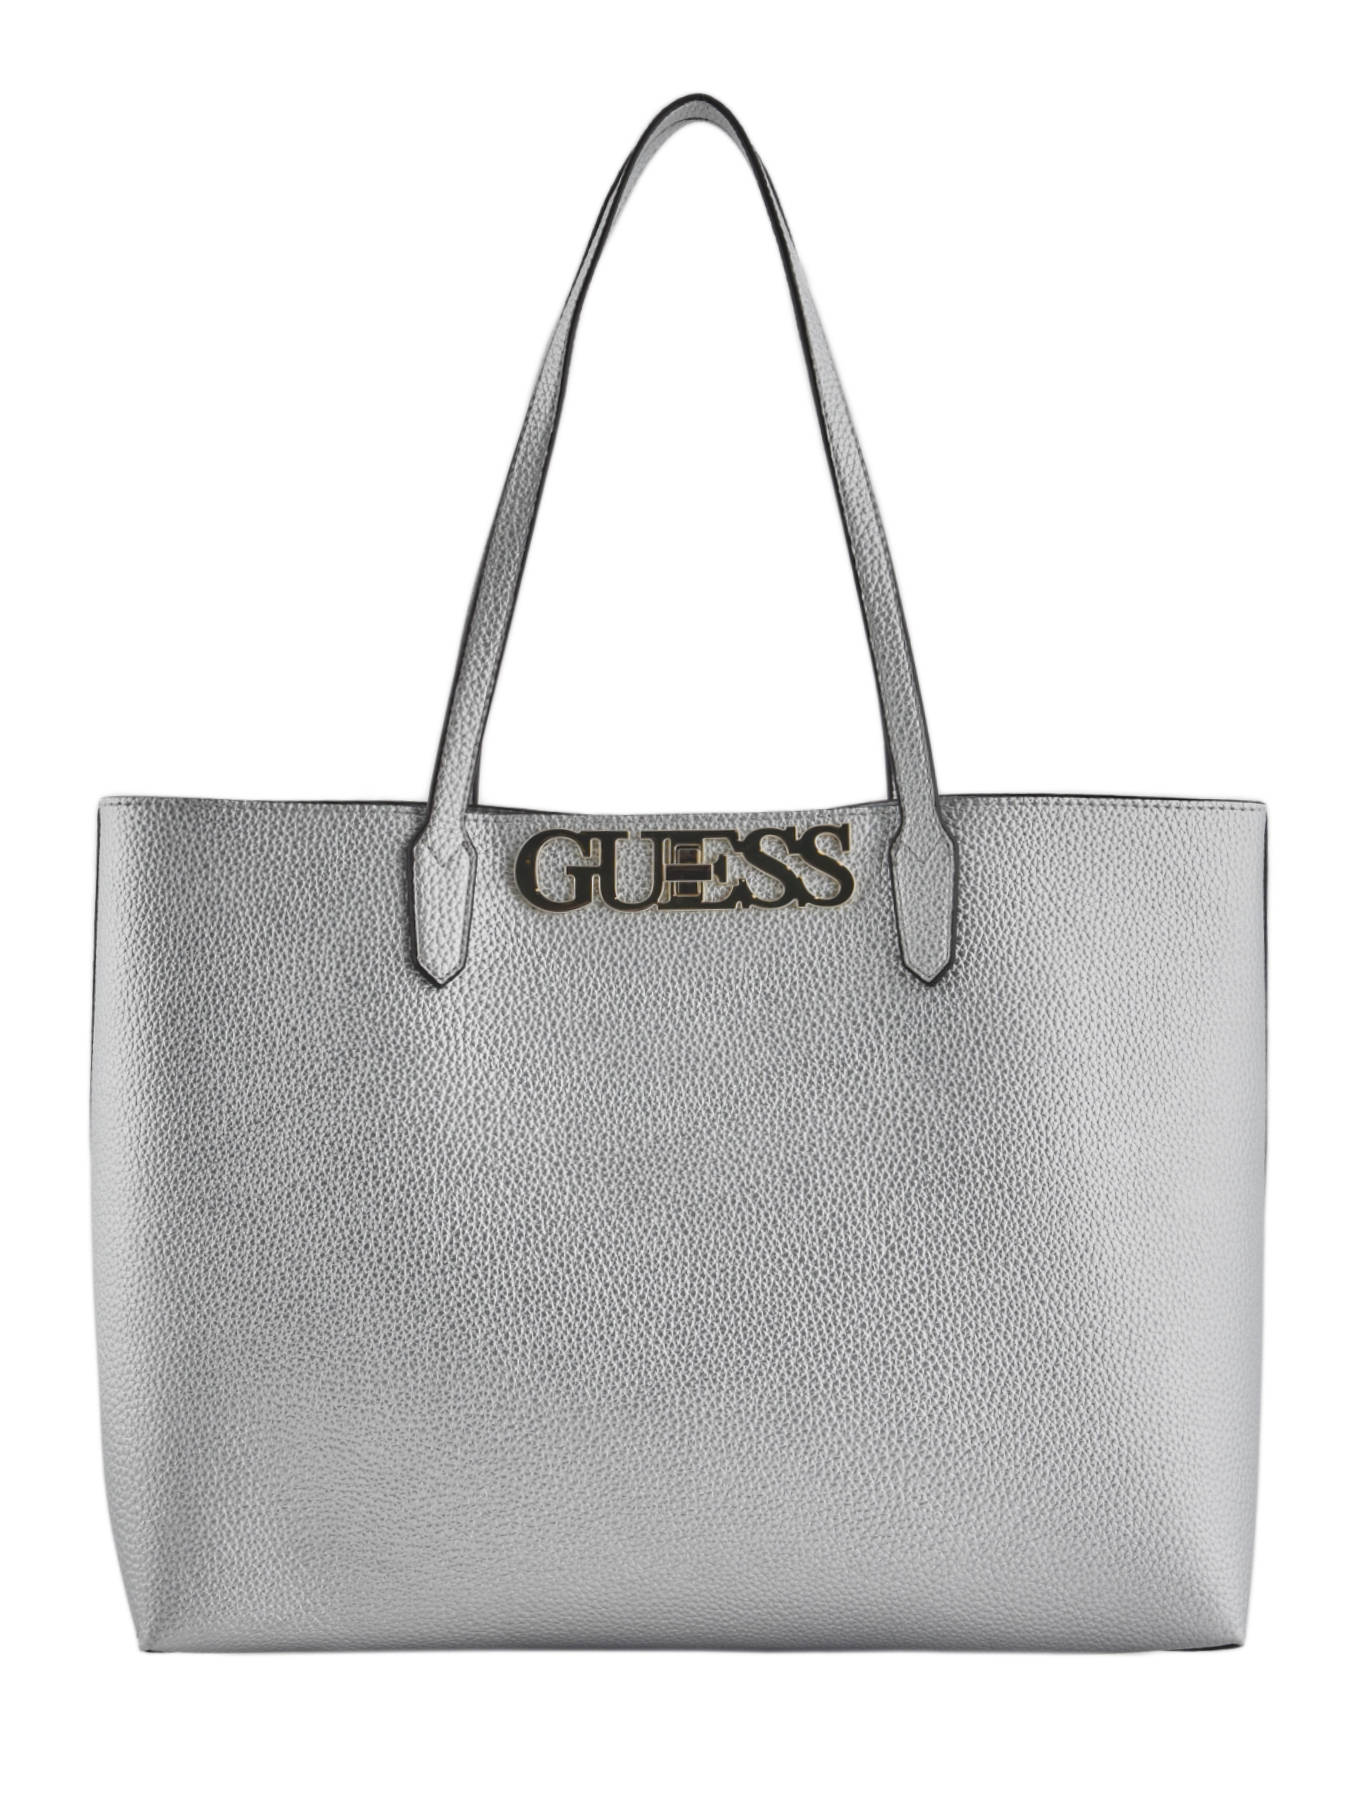 Cabas Chic Guess Chic Uptown Uptown Sac Cabas Sac yb6gfY7